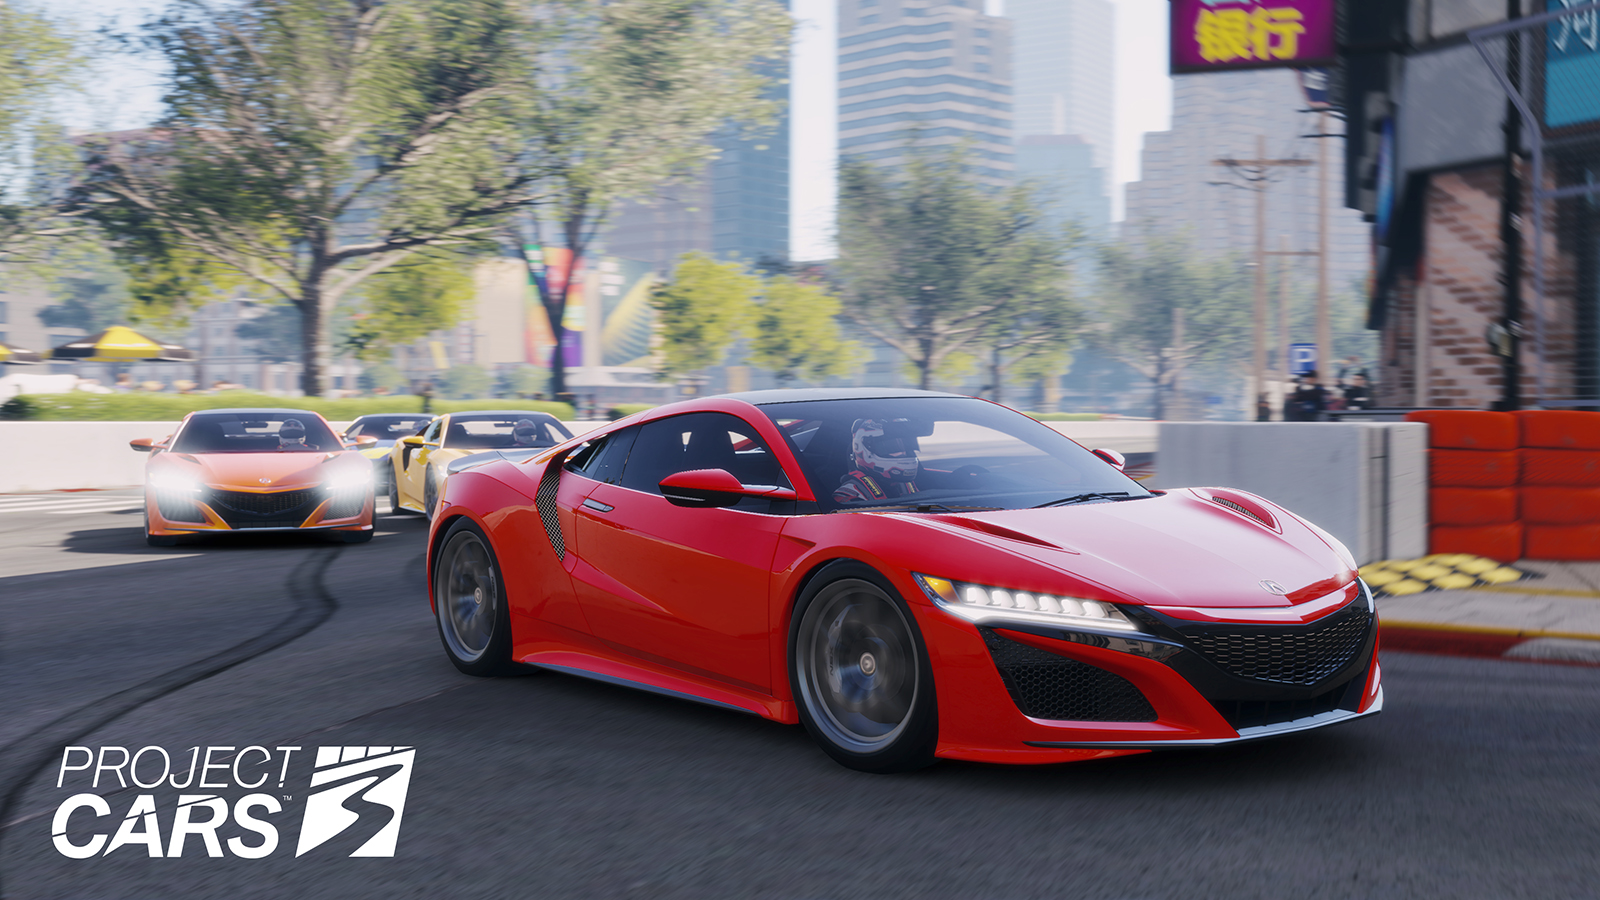 Project Cars 3 graphics